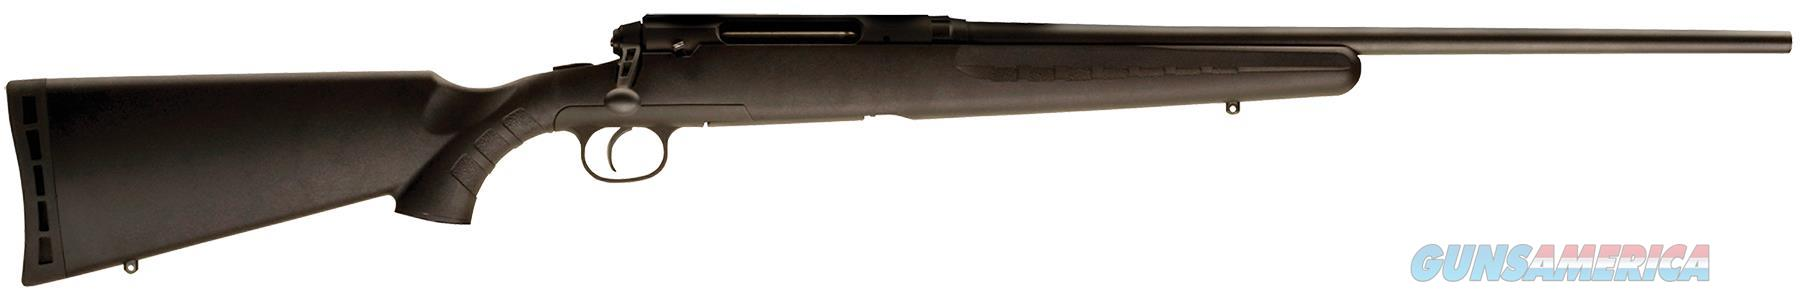 "SAVAGE ARMS AXIS 3006 22"" BLK 19226  Guns > Rifles > Savage Rifles > Standard Bolt Action > Sporting"